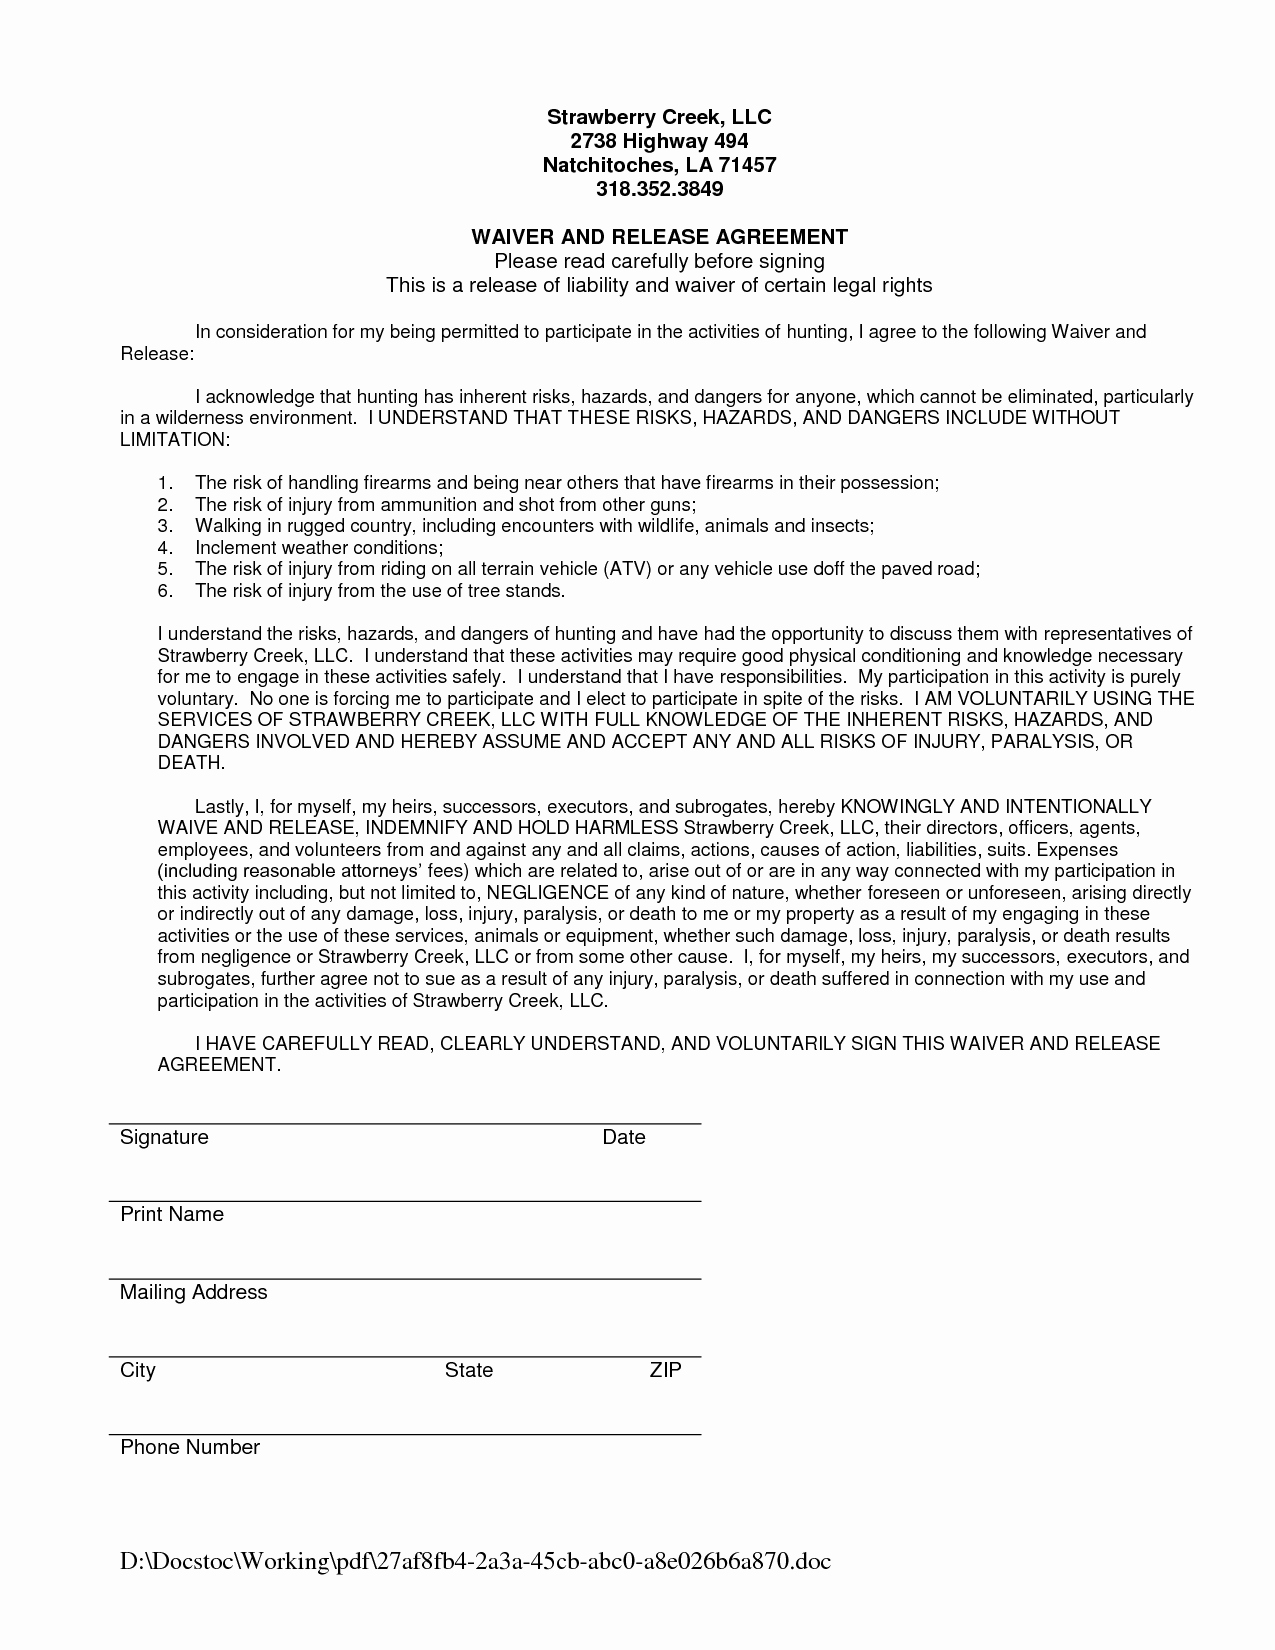 Release Of Responsibility Letter New Waiver and Release Liability form Sample Swifter